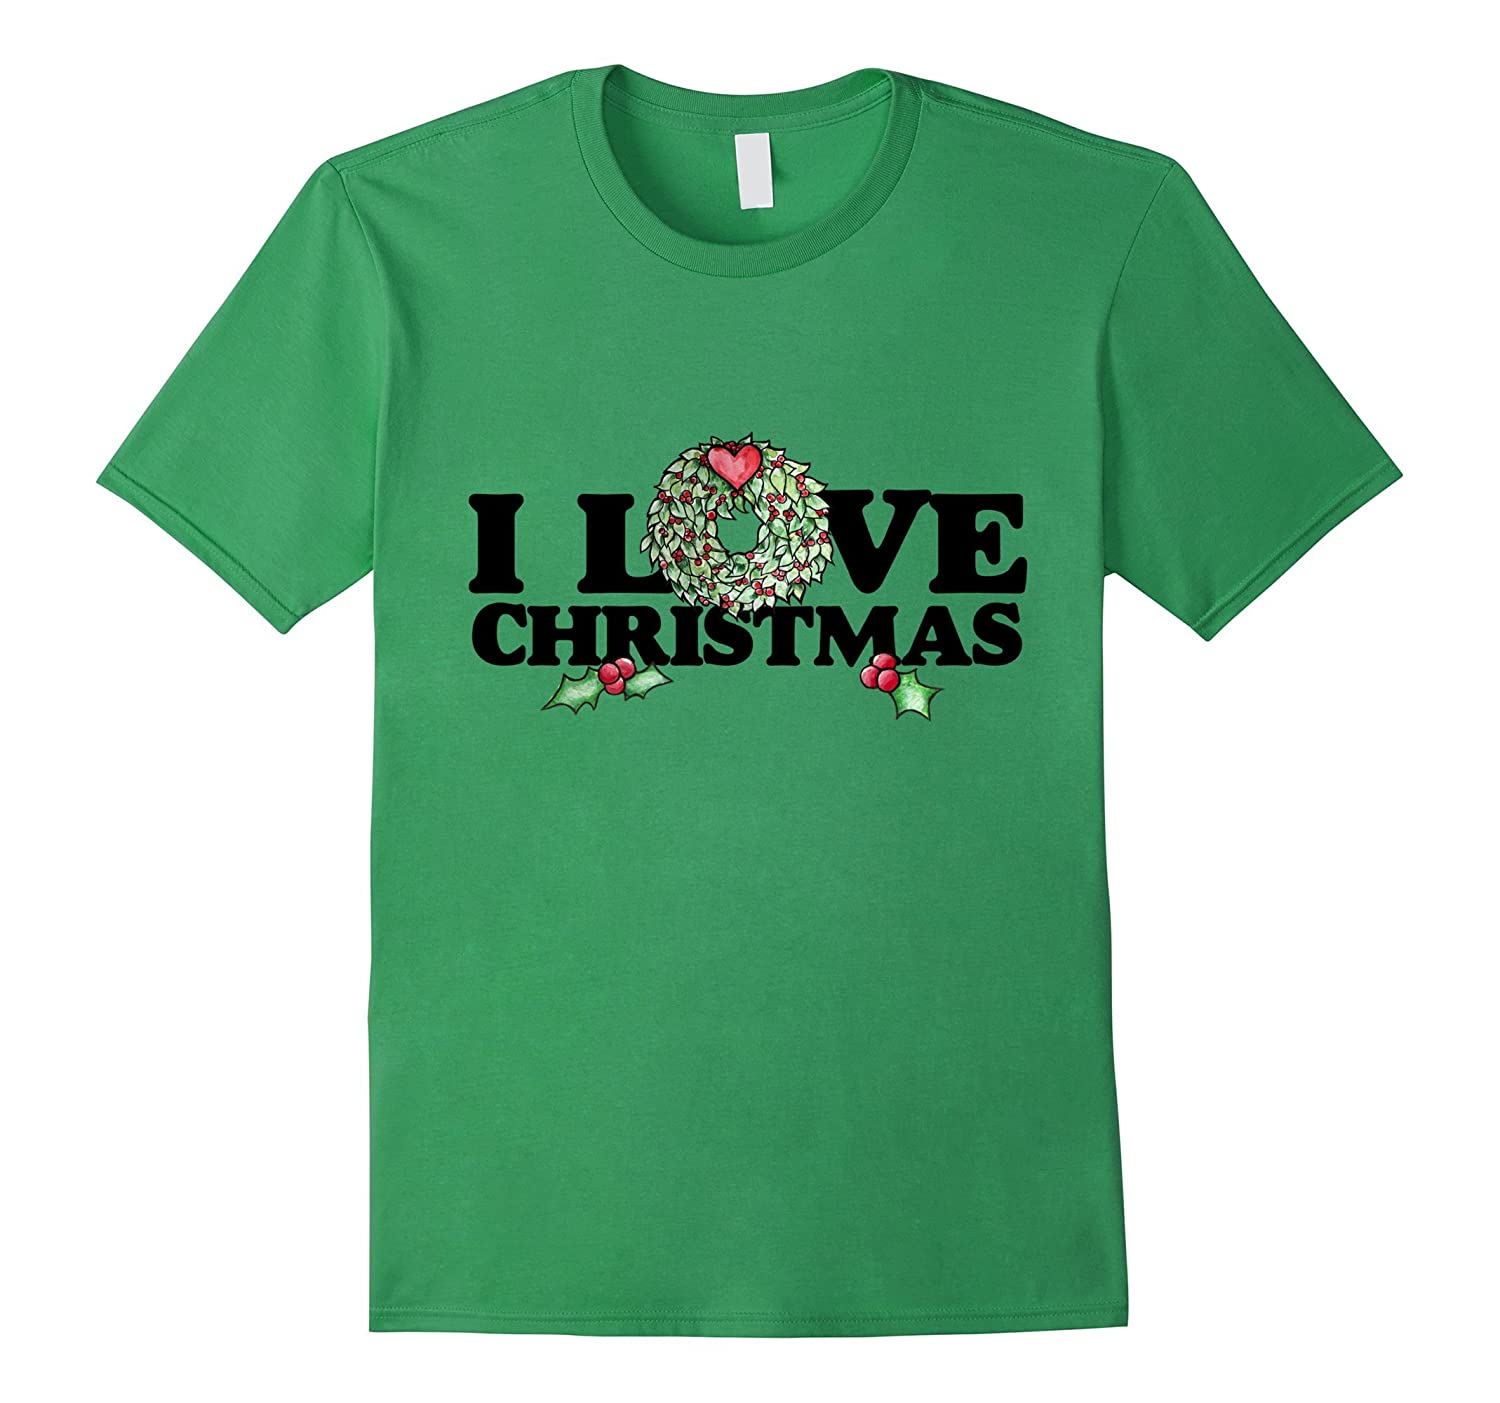 I love Christmas t-shirt cute holiday tshirt xmas party ...